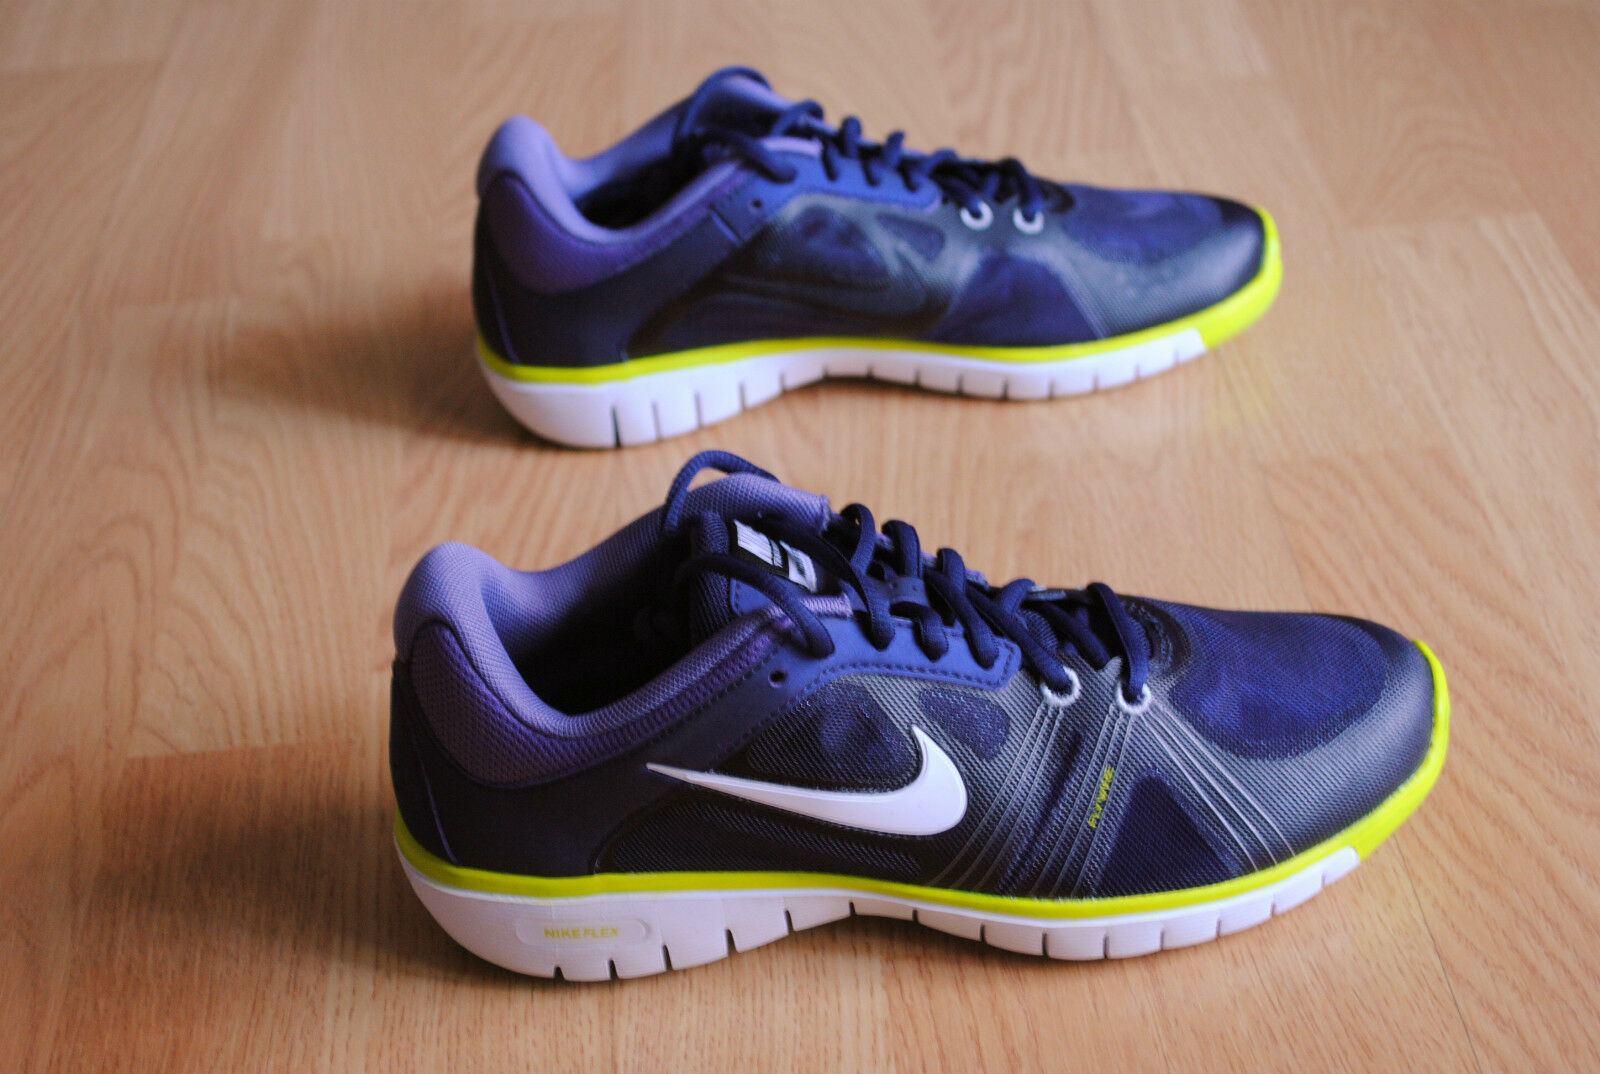 Nike Move Fit Damenss gr 38 - aerobic fRee fLeXTrainer Training light